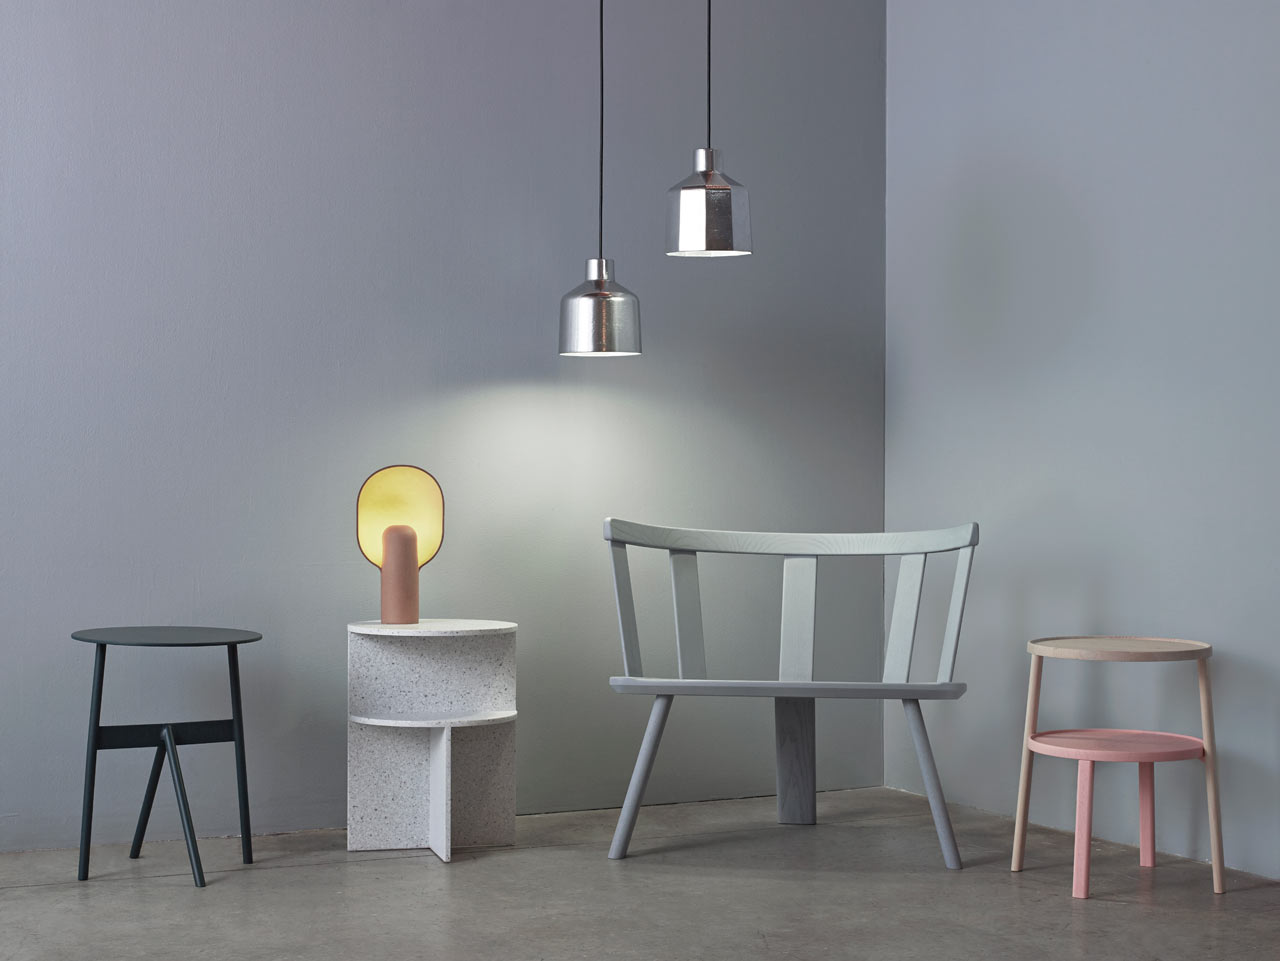 This Lamp Design Combines Two Organic Shapes Into a